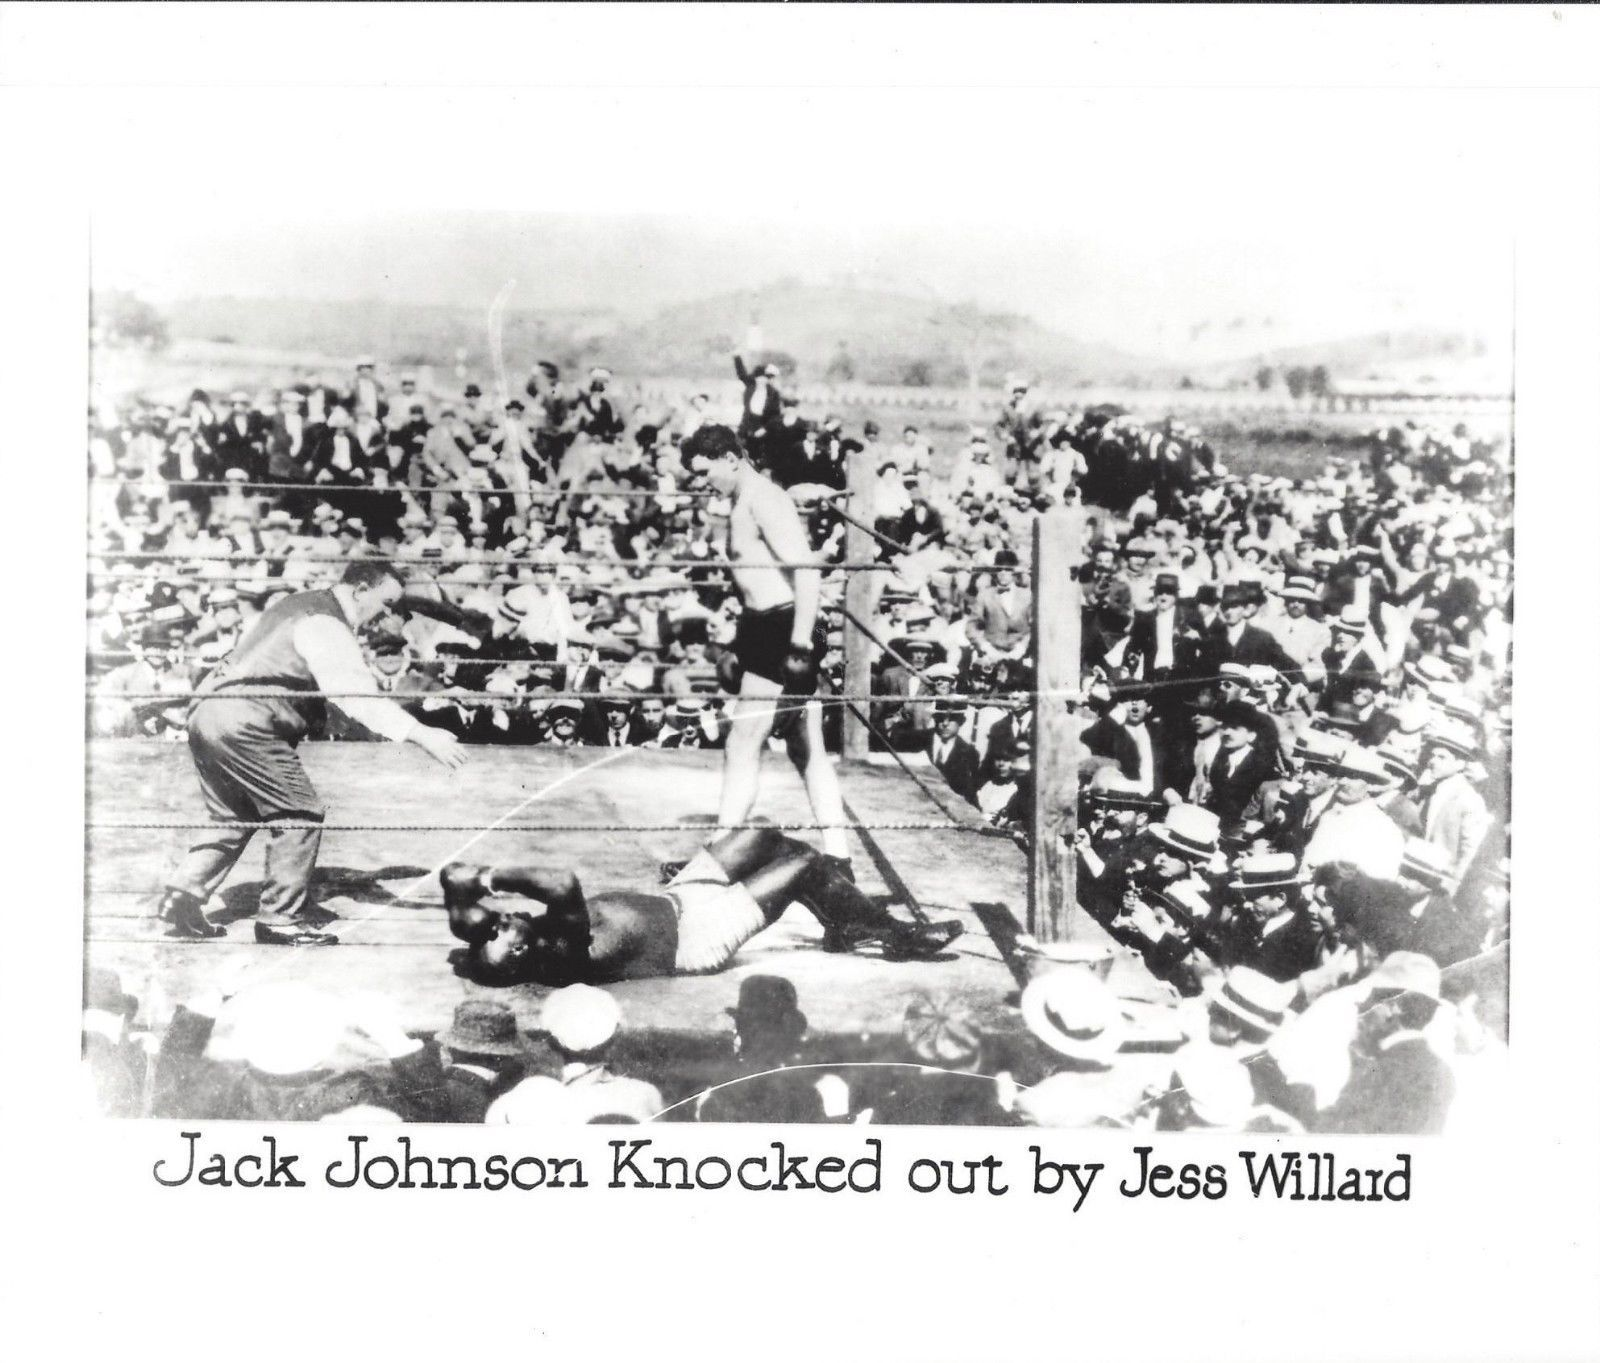 Primary image for JACK JOHNSON KNOCKED OUT BY JESS WILLARD PHOTO BOXING PICTURE